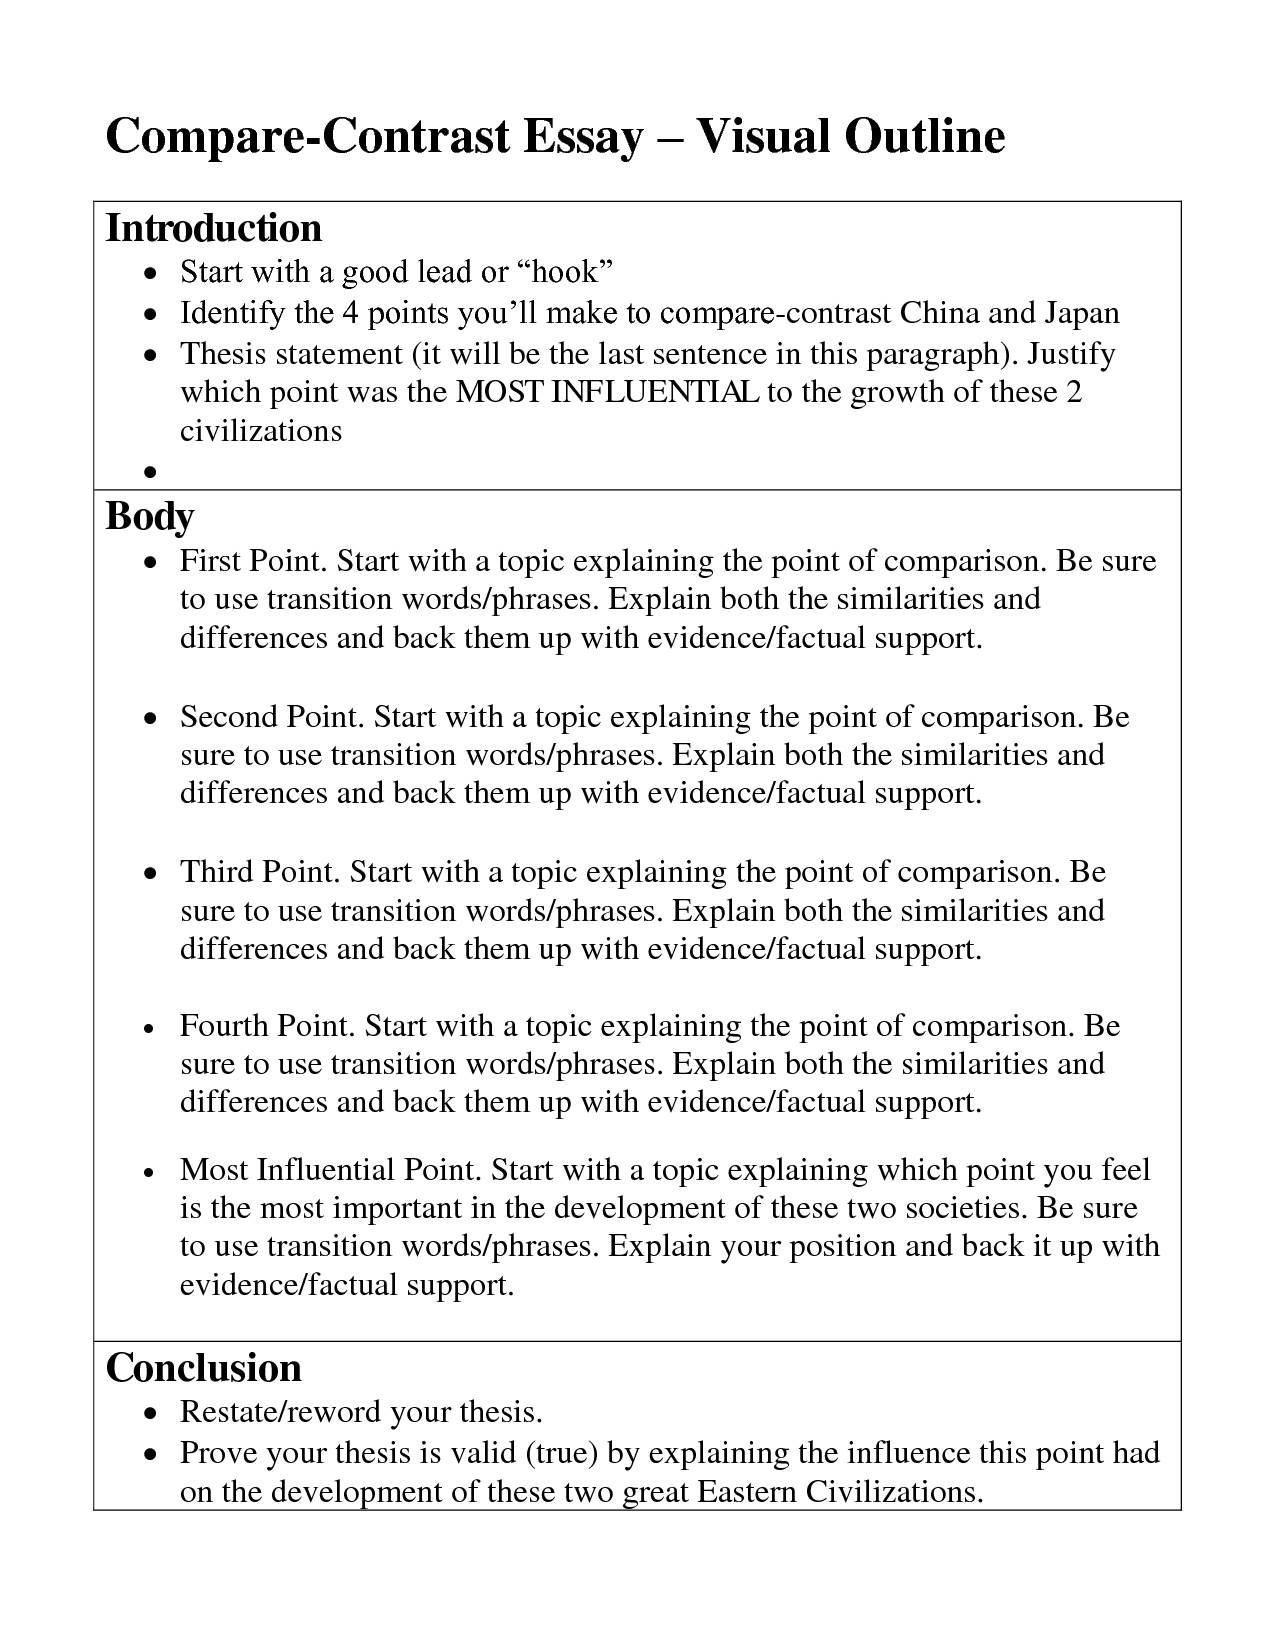 007 Essay Example Comparing And Contrasting Unique Comparison Contrast Sample Pdf Compare Structure University Topics On Health Full